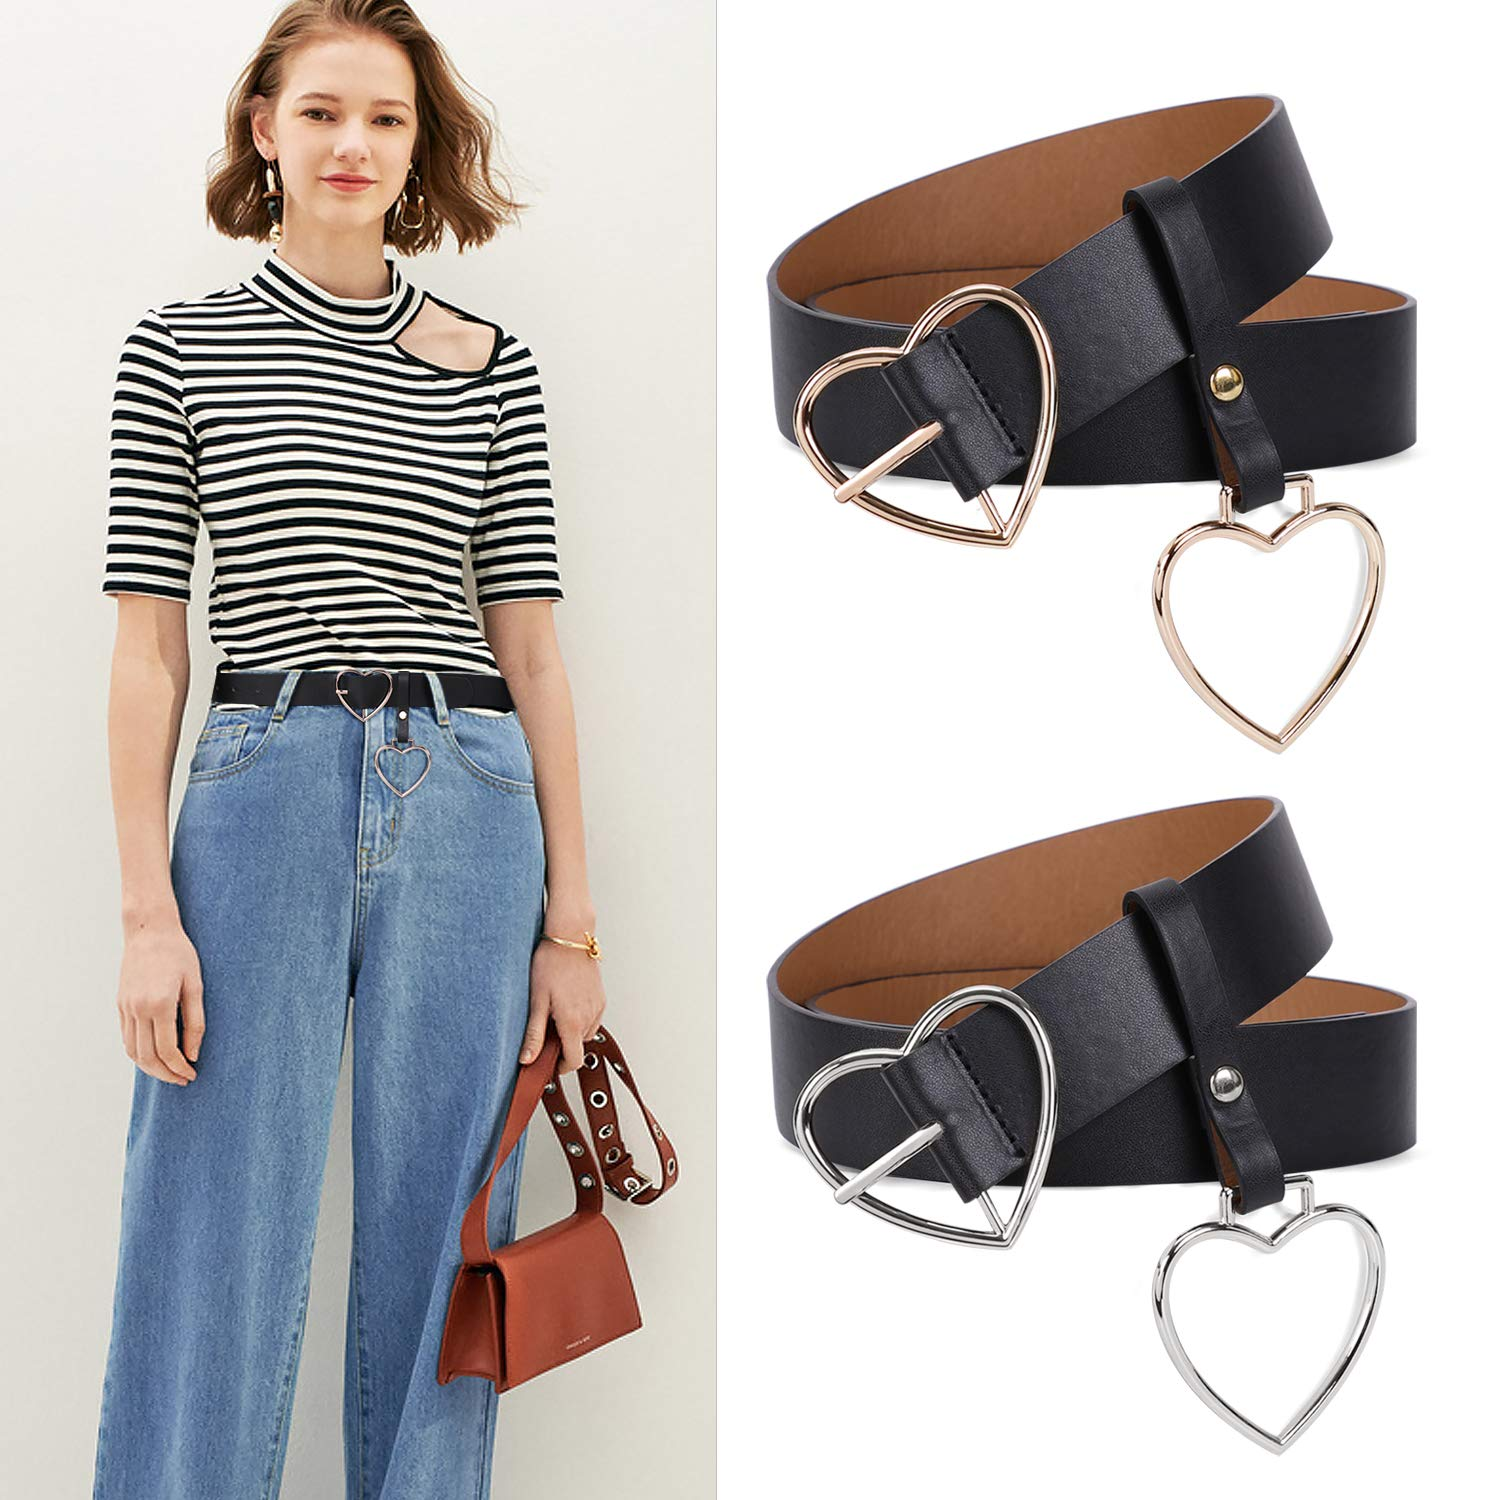 Women Wide Leather Belt Heart-shaped Belt Silver Metal Buckle for Women Girls Students Jeans Shorts Ladies Dress